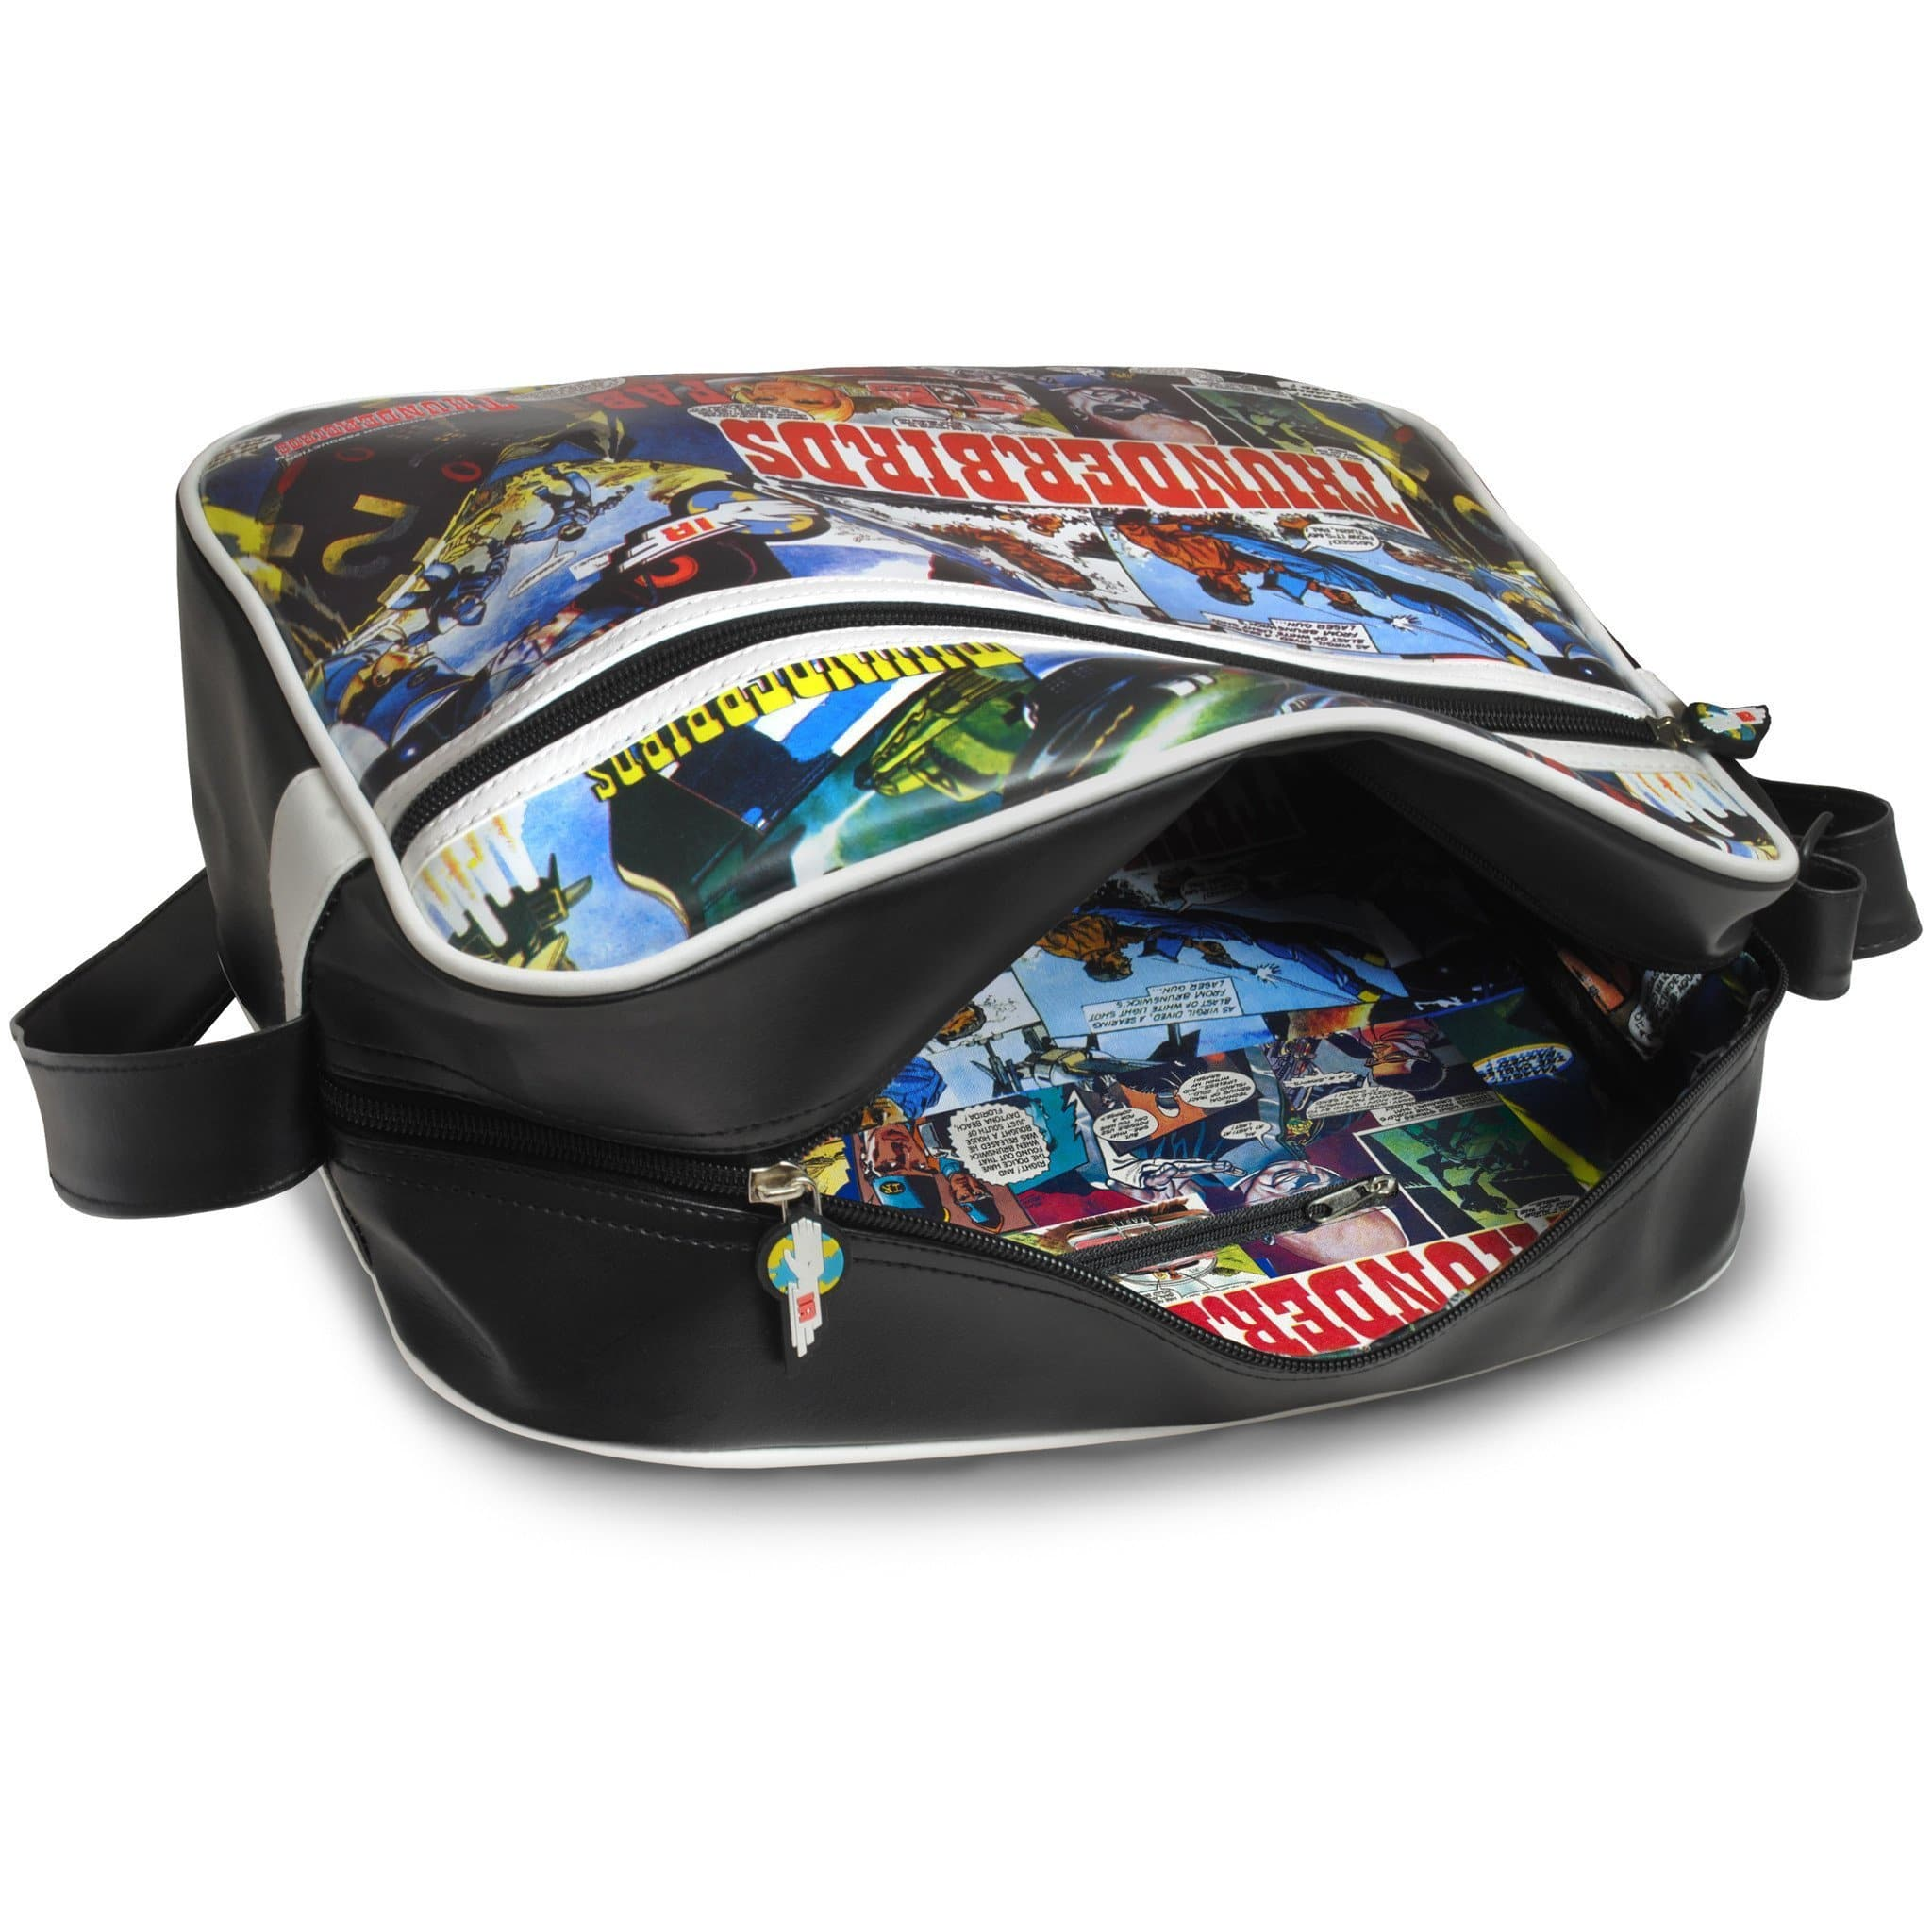 Thunderbirds Comic Strip Messenger Bag - Gerry Anderson Official - 4